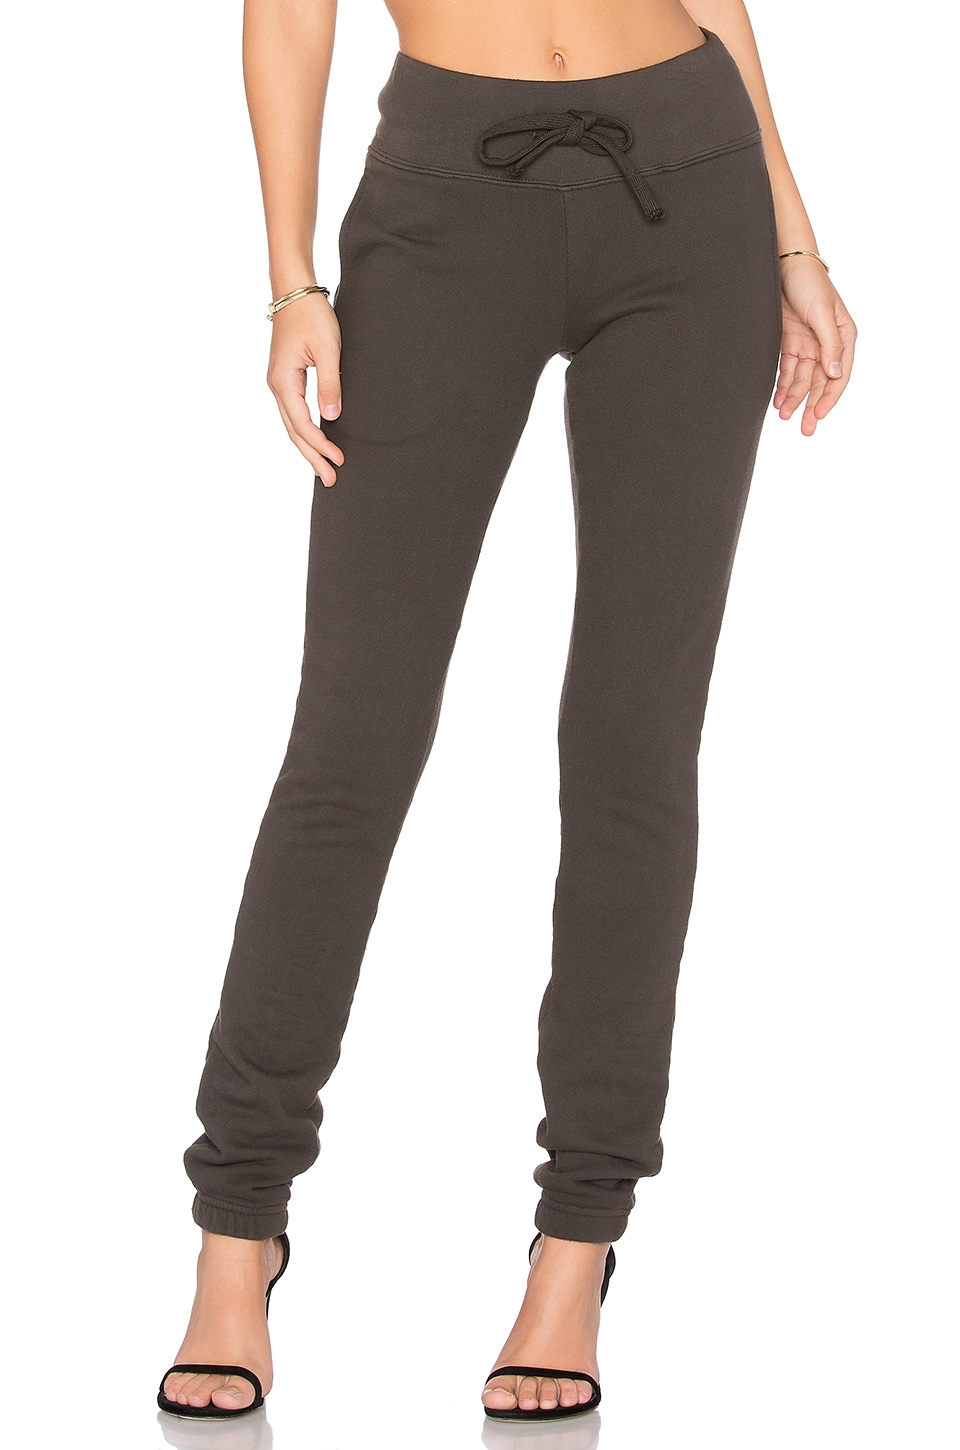 JOAH BROWN Walk This Way Pant in Charcoal